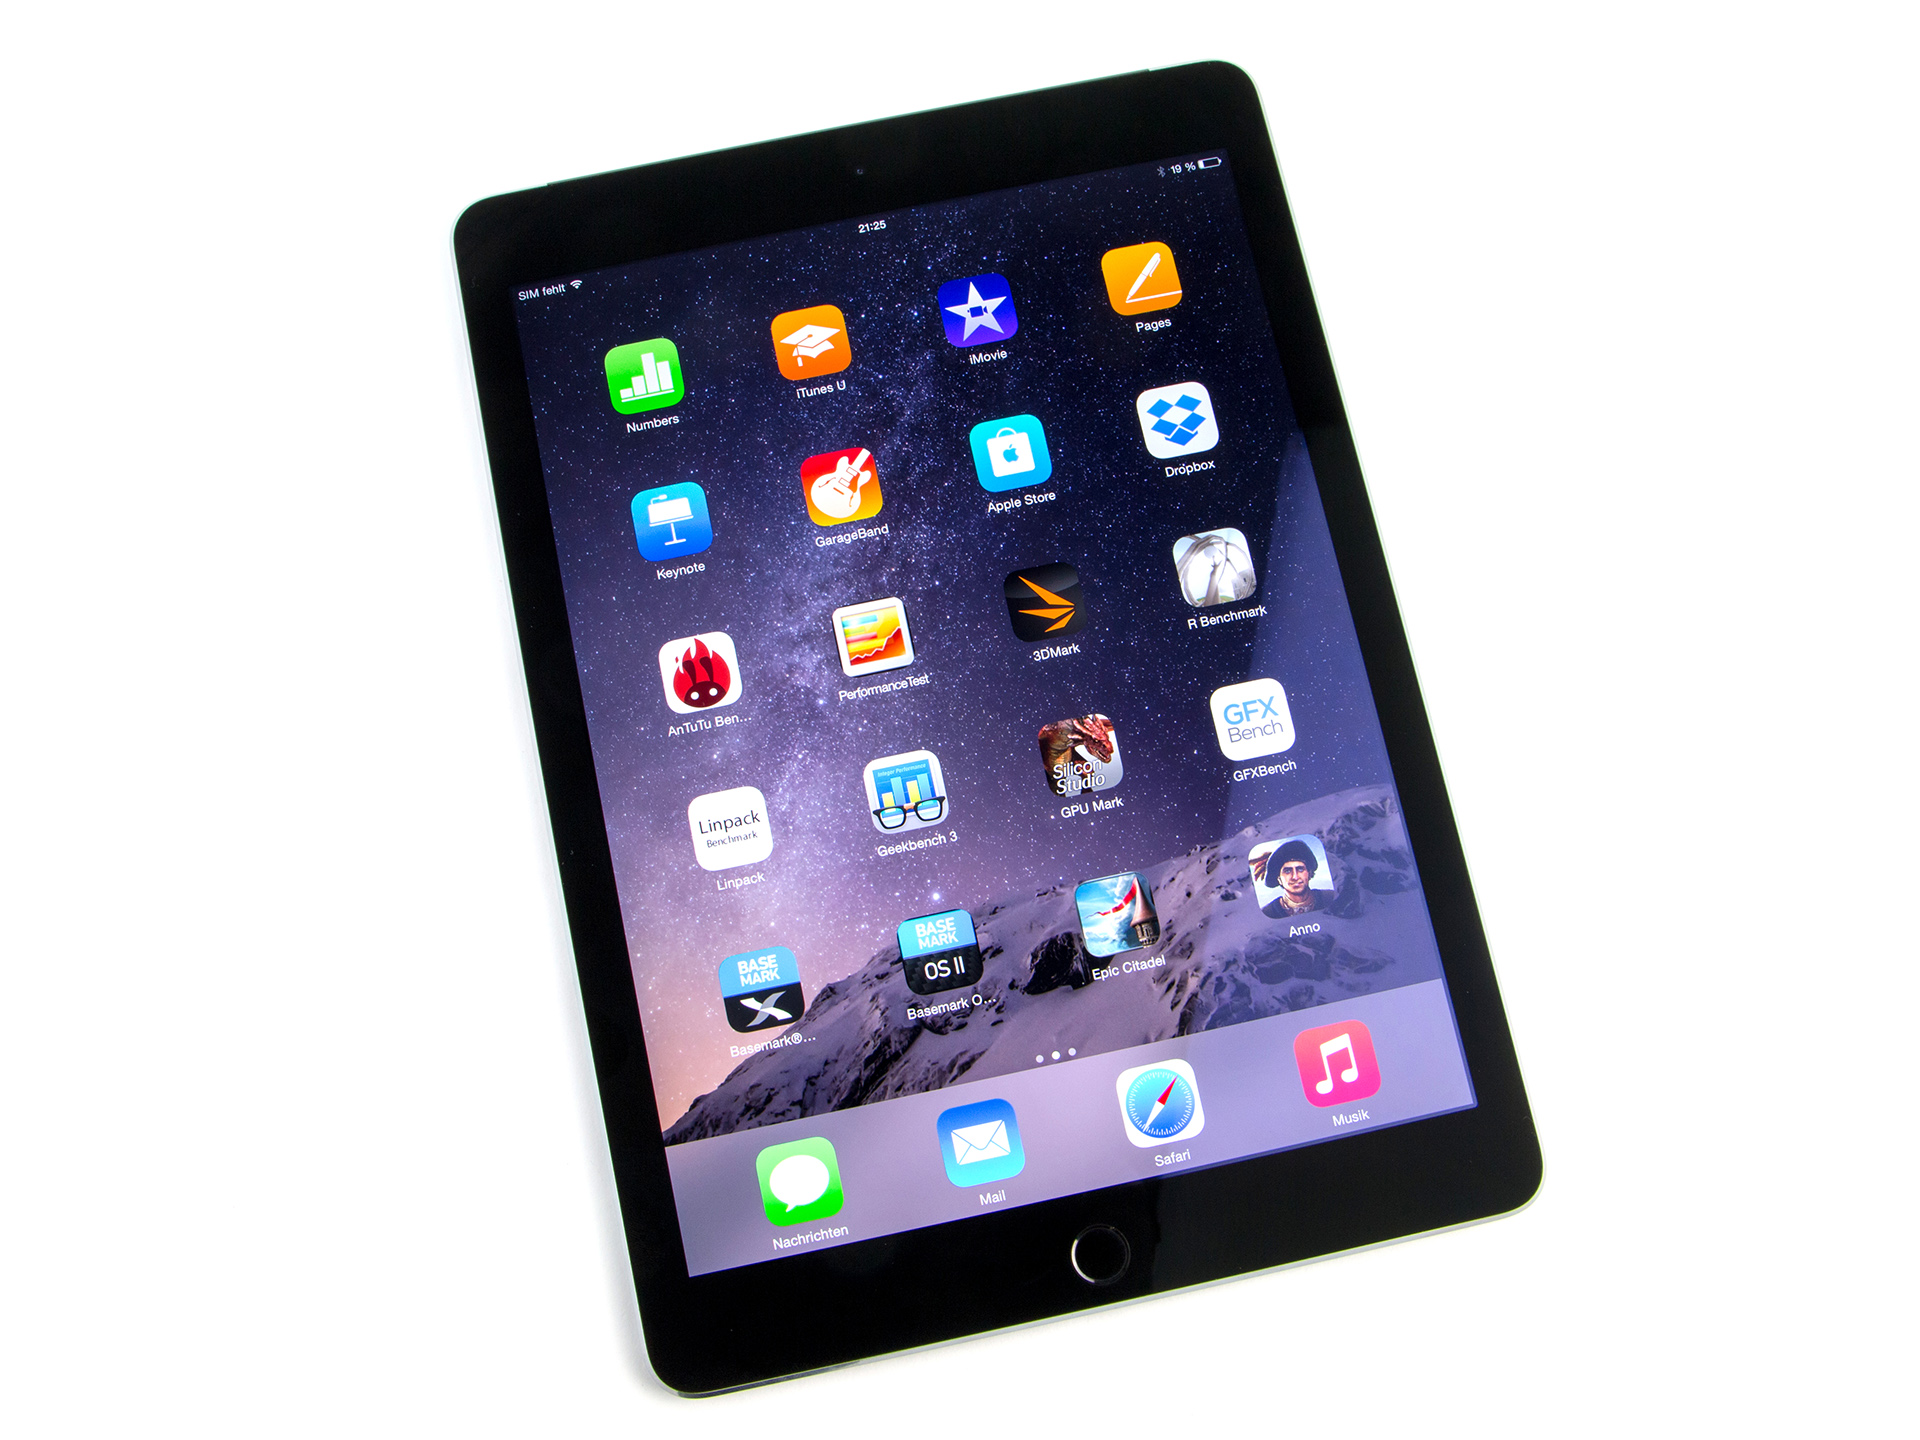 Apple iPad Air 2 (A1567 / 128 GB / LTE) Tablet Review